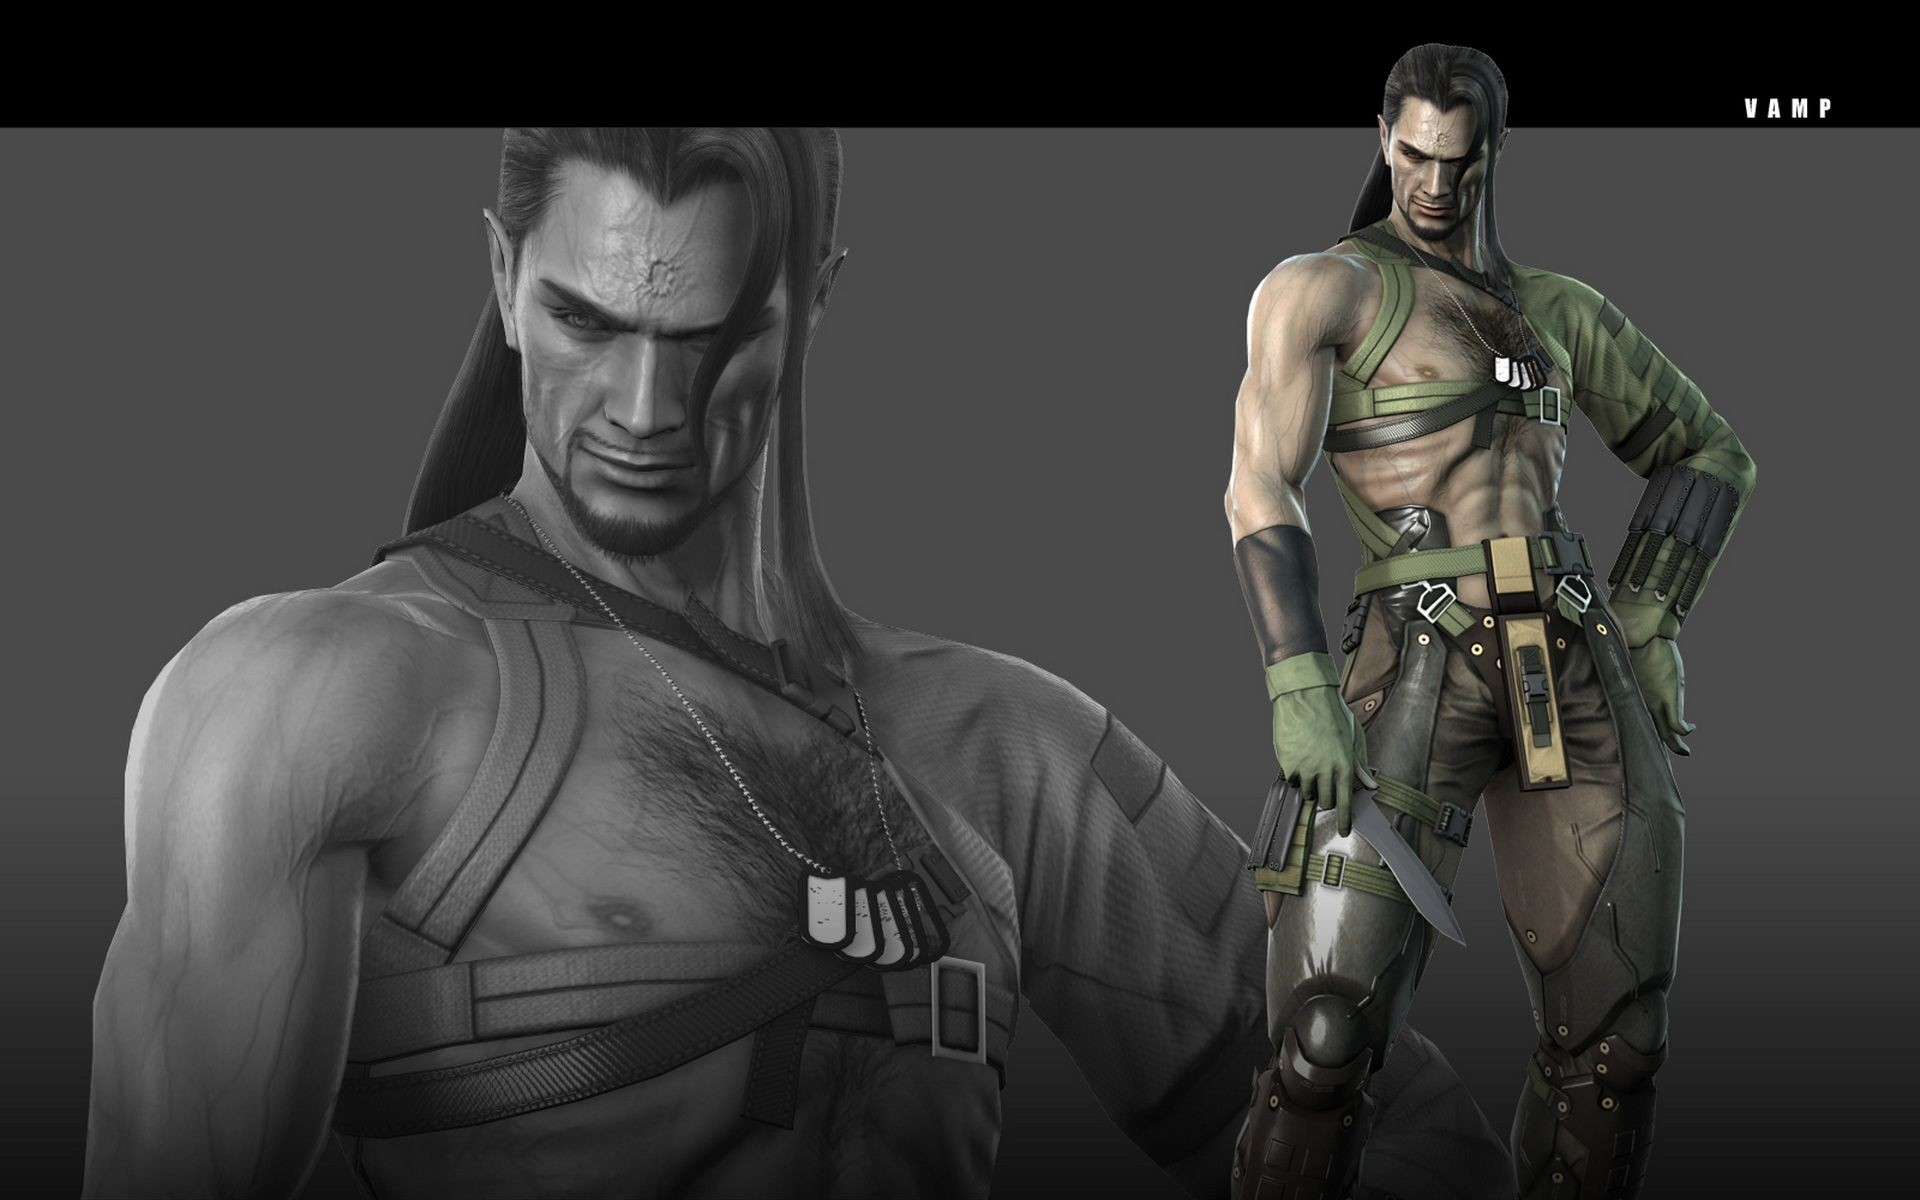 Res: 1920x1200, Note, if Anderson is too much for vamp, switch him out for Solidus Snake  instead.